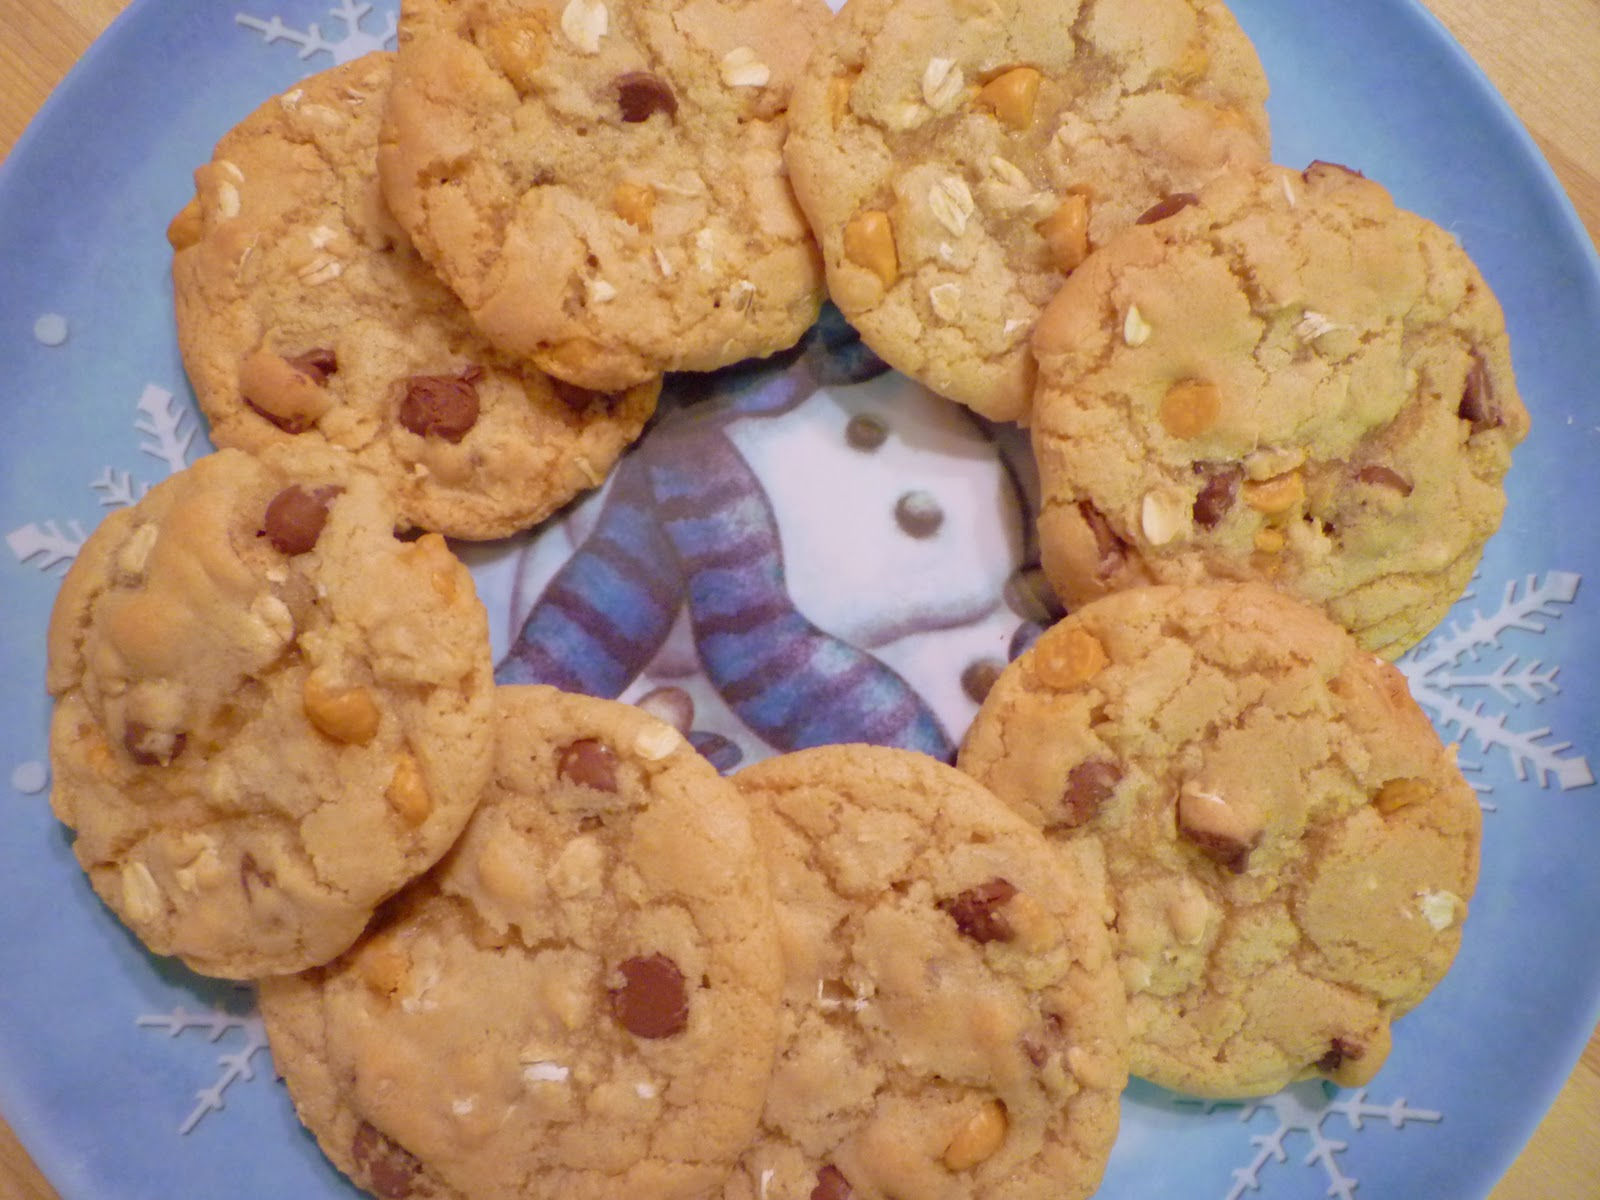 ... in the Barbershop?!: Oatmeal Butterscotch Chocolate Chip Cookies